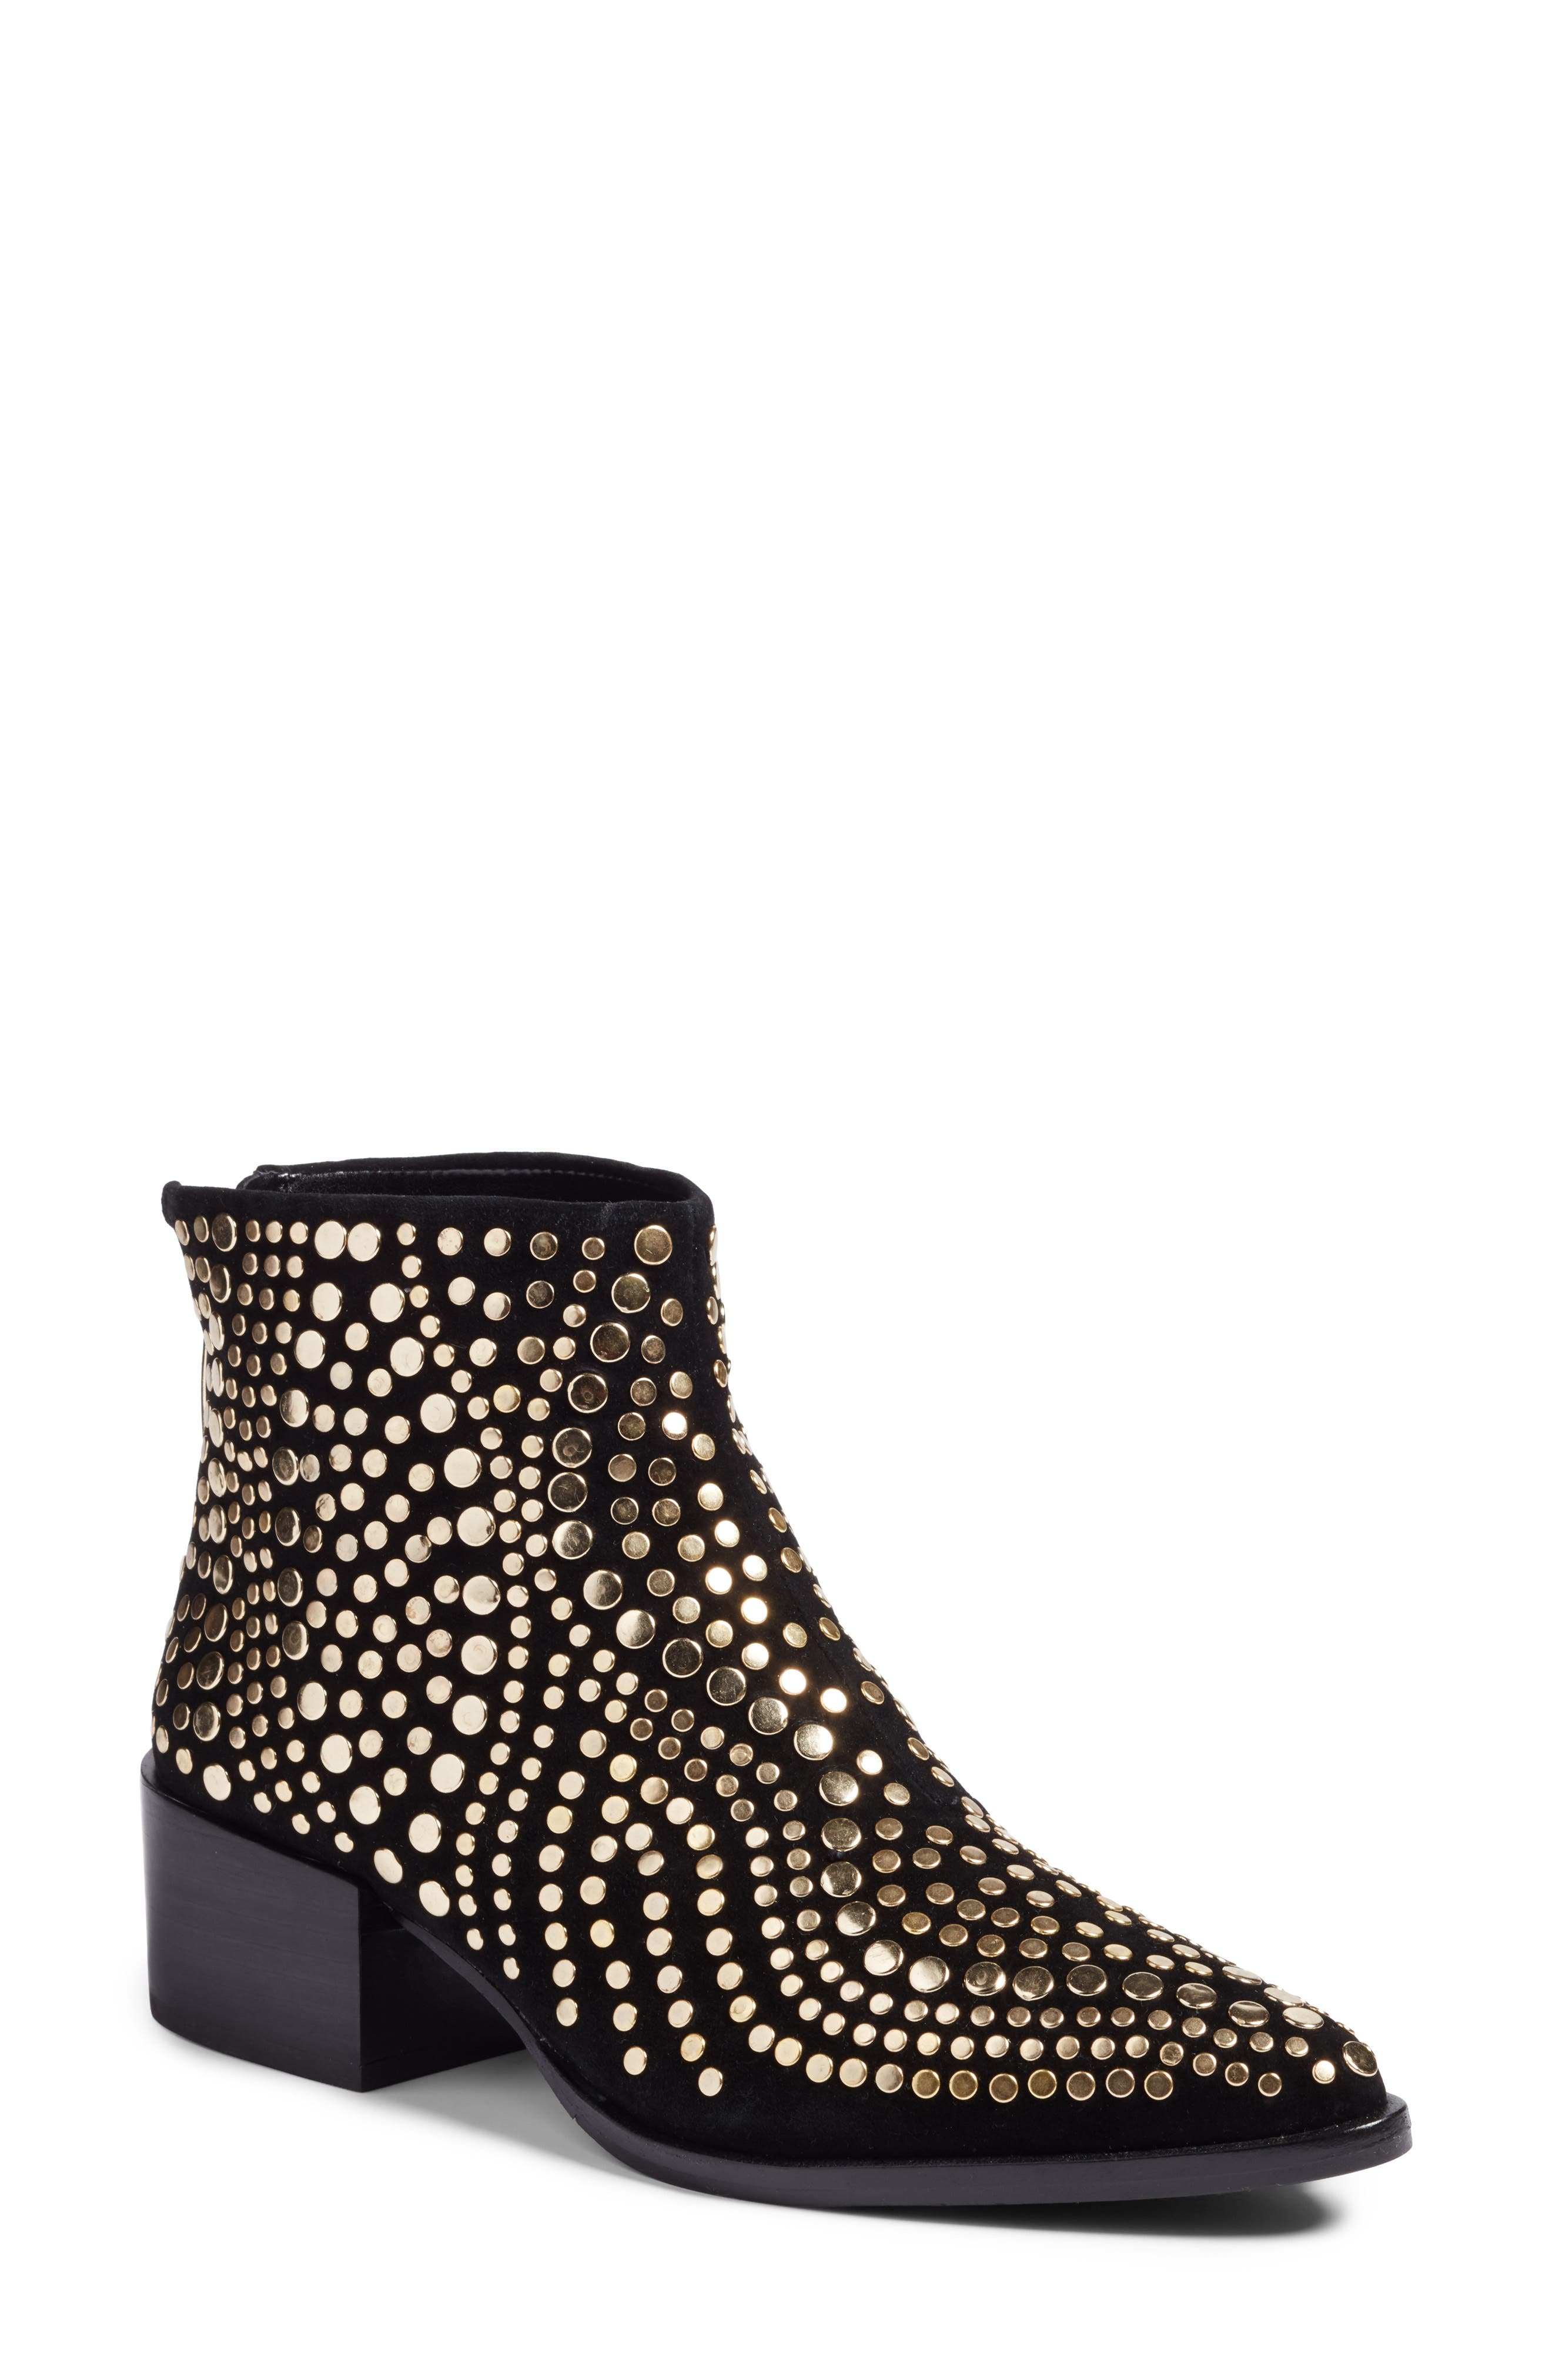 Alternate Image 1 Selected - Vince Camuto Edenny Studded Pointy Toe Bootie (Women)